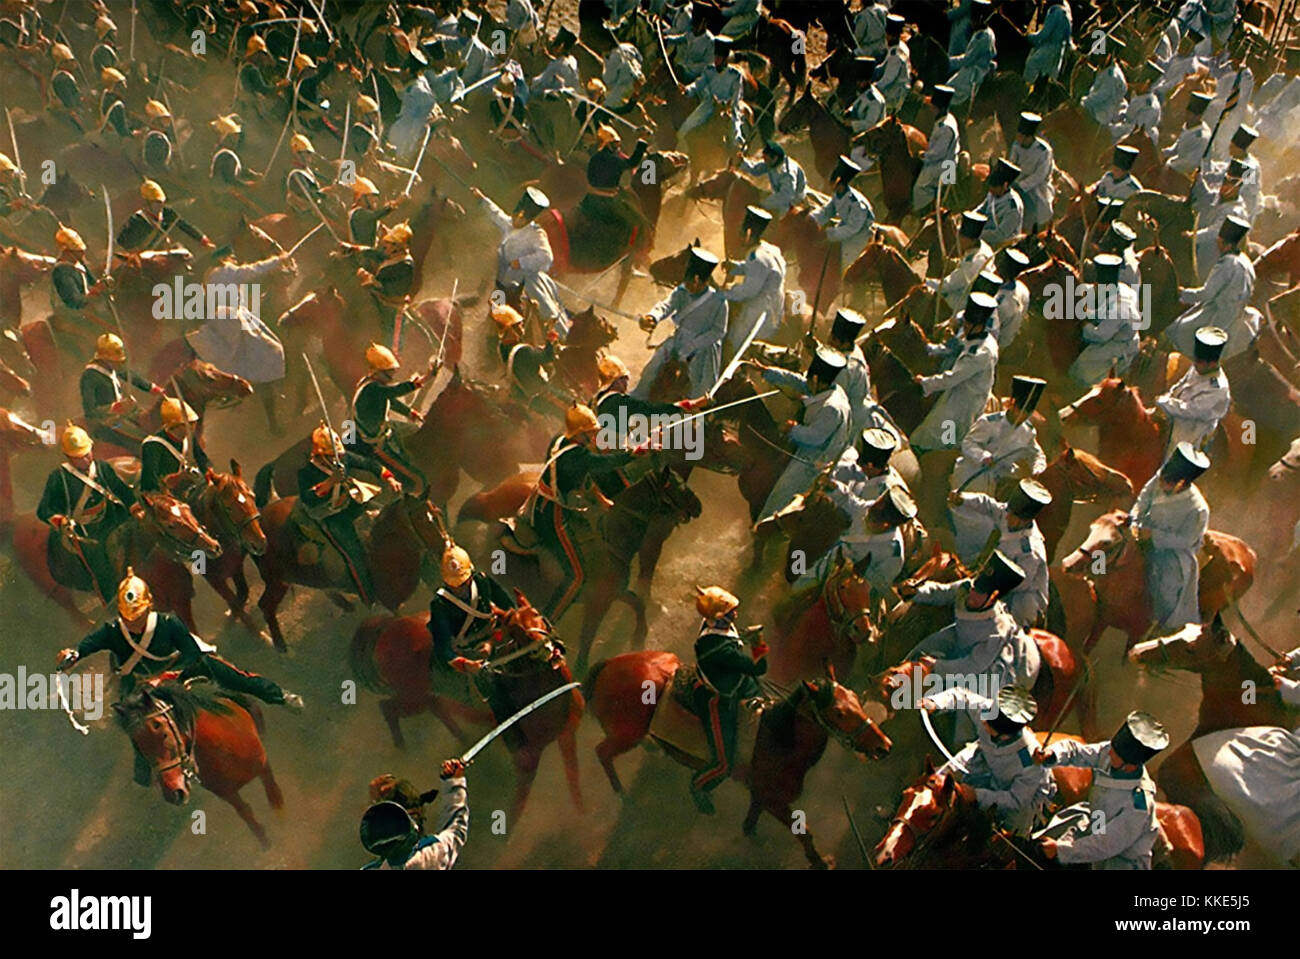 THE CHARGE OF THE LIGHT BRIGADE 1968 United Artists . British (at left) and Russian cavalry clash. Stock Photo